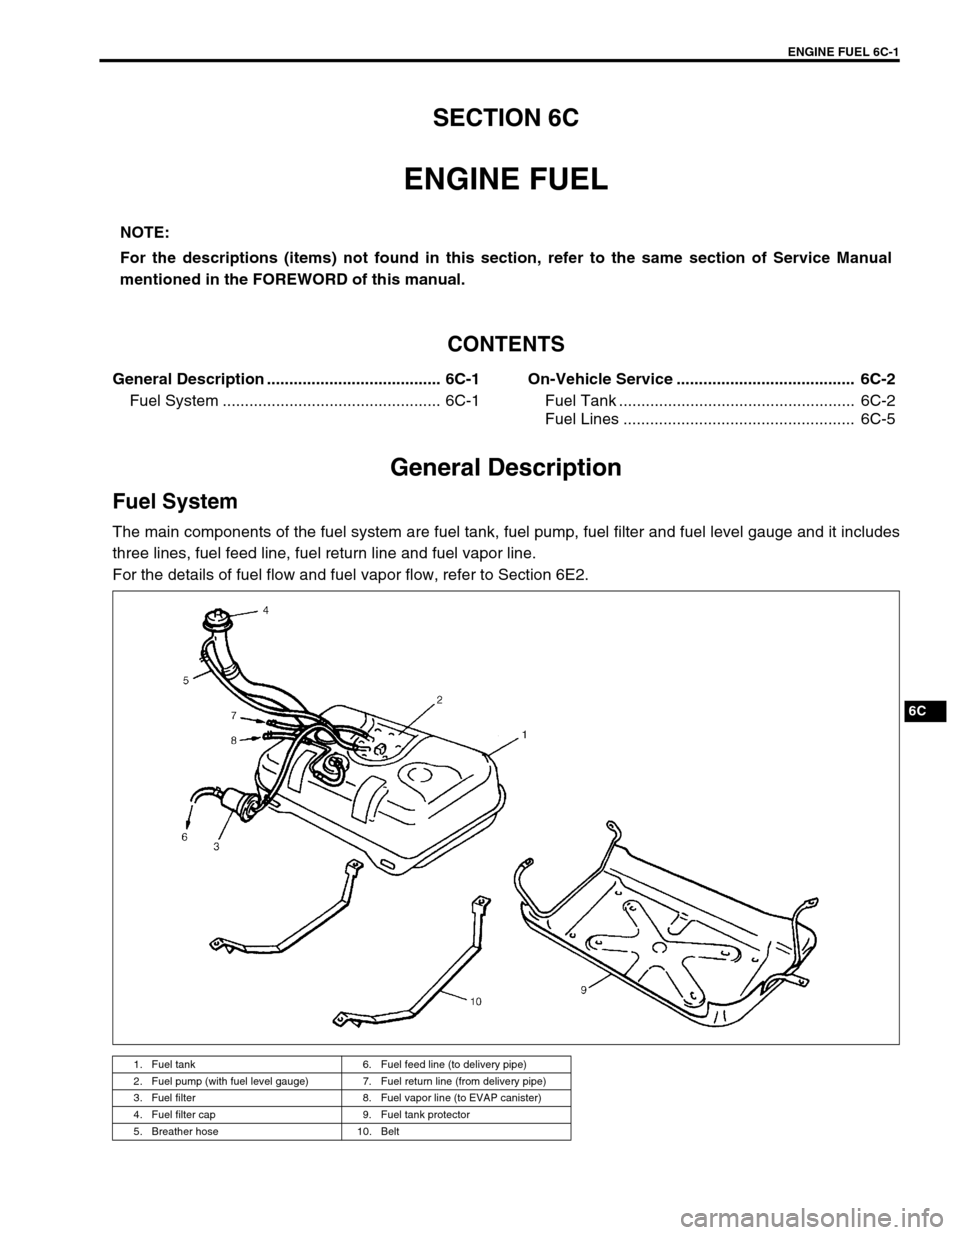 Suzuki Grand Vitara 2001 2g Owners Manual. Suzuki Grand Vitara 2001 2g Owners Manual Page 328 Engine Fuel 6c1. Suzuki. Suzuki Vitara 1 6 Engine Diagram At Scoala.co